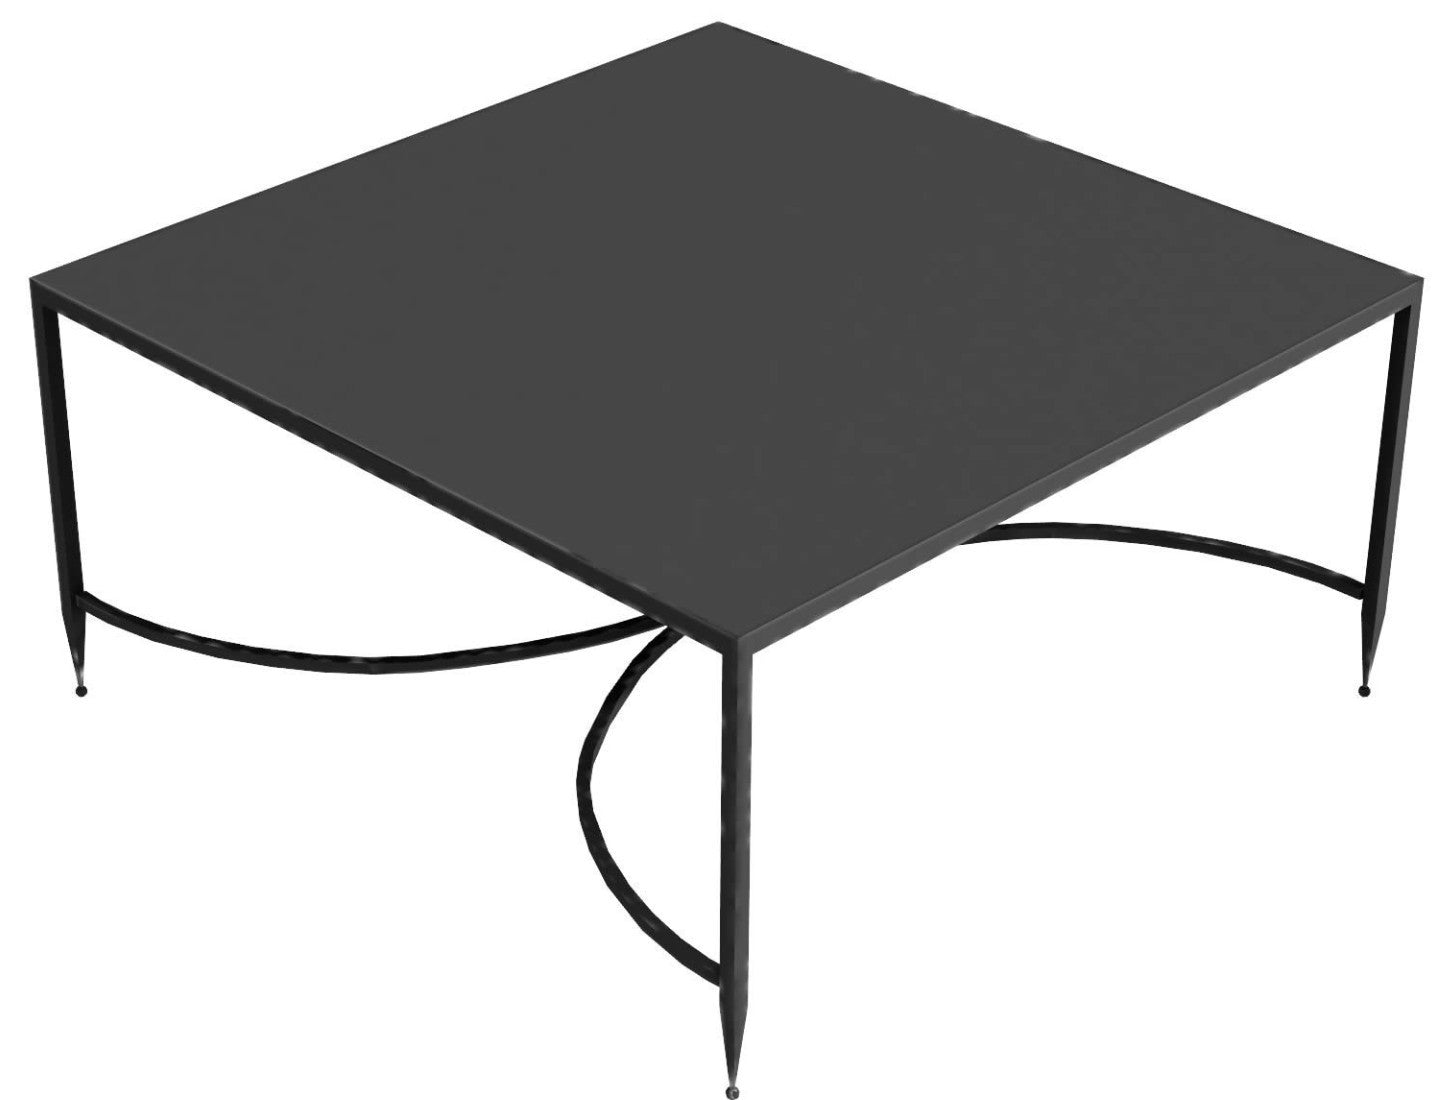 Toscana iron square coffee table, 76 x 76 cm